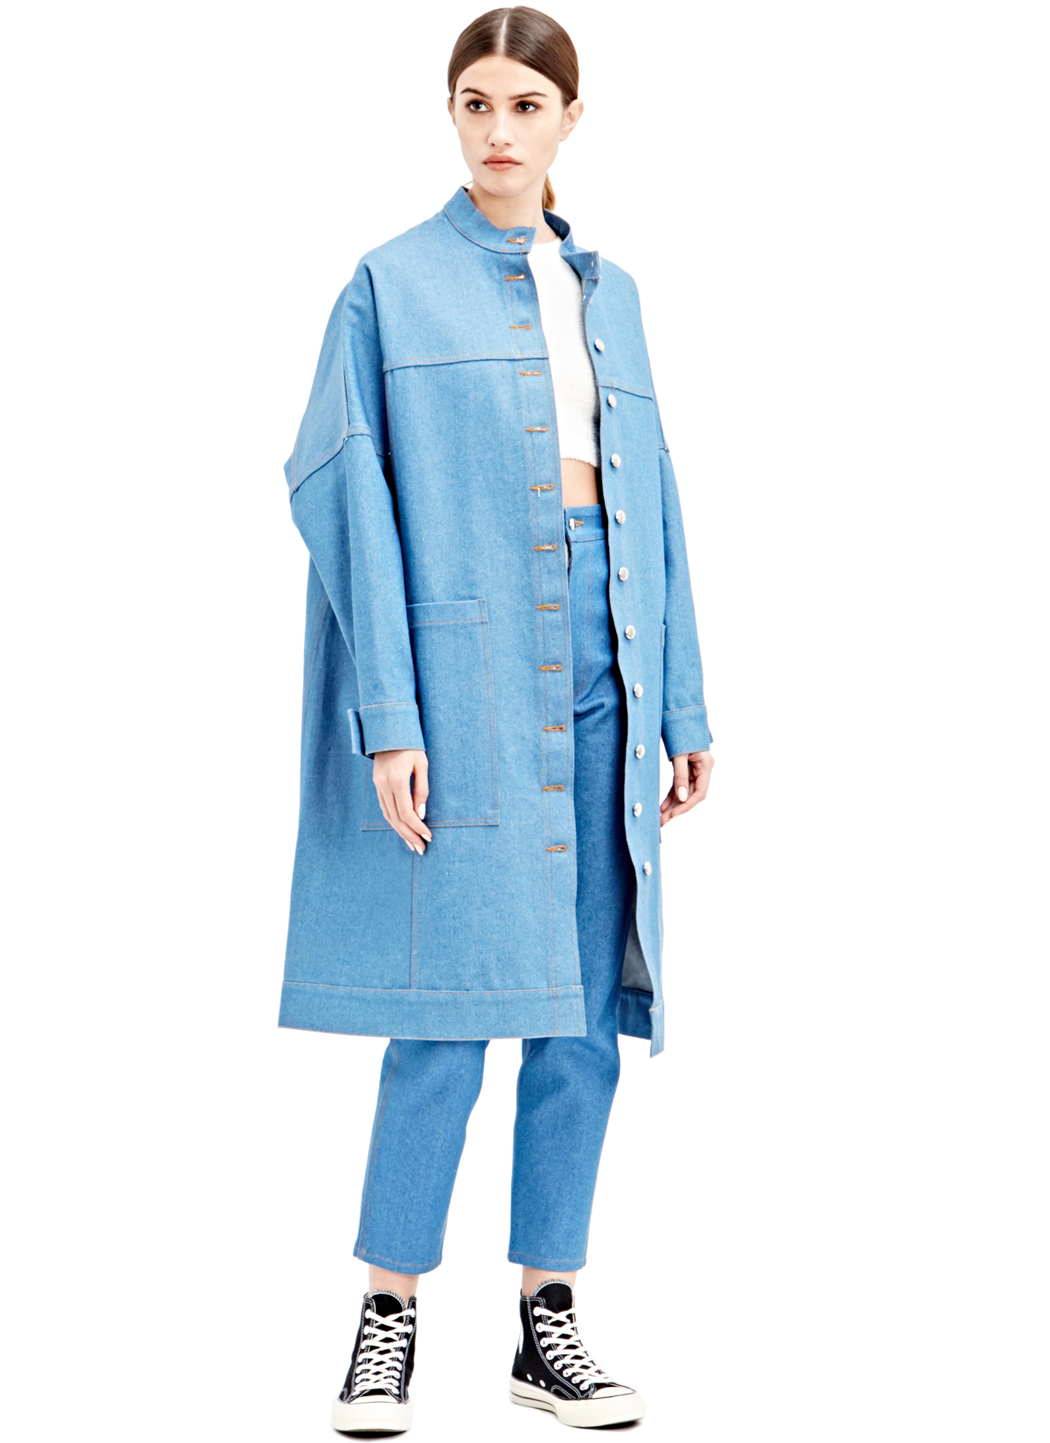 Eckhaus latta Oversized Denim Coat in Blue | Lyst